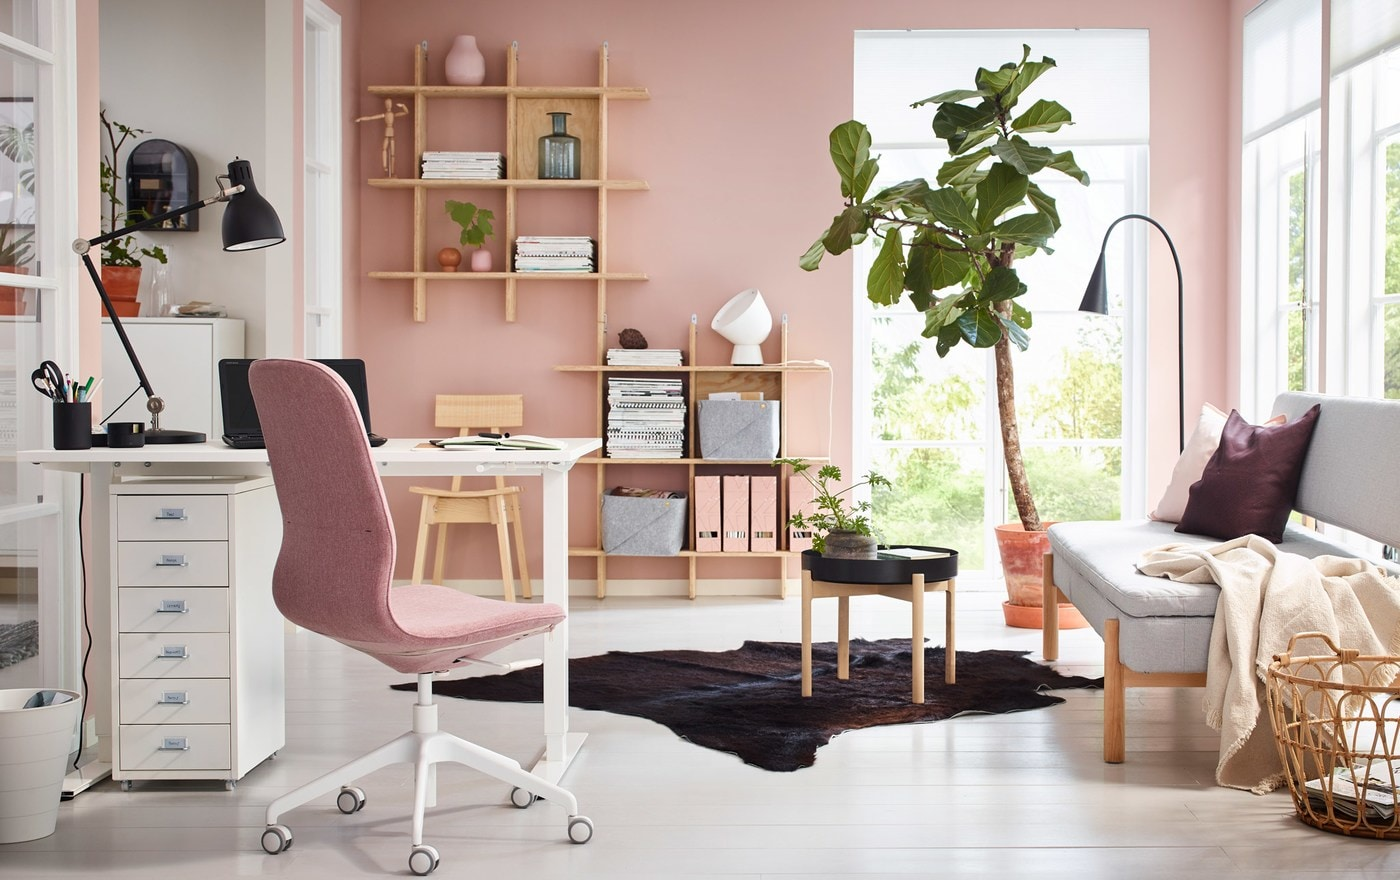 A pink and white home office with a sit/stand white SKARSTA desk.